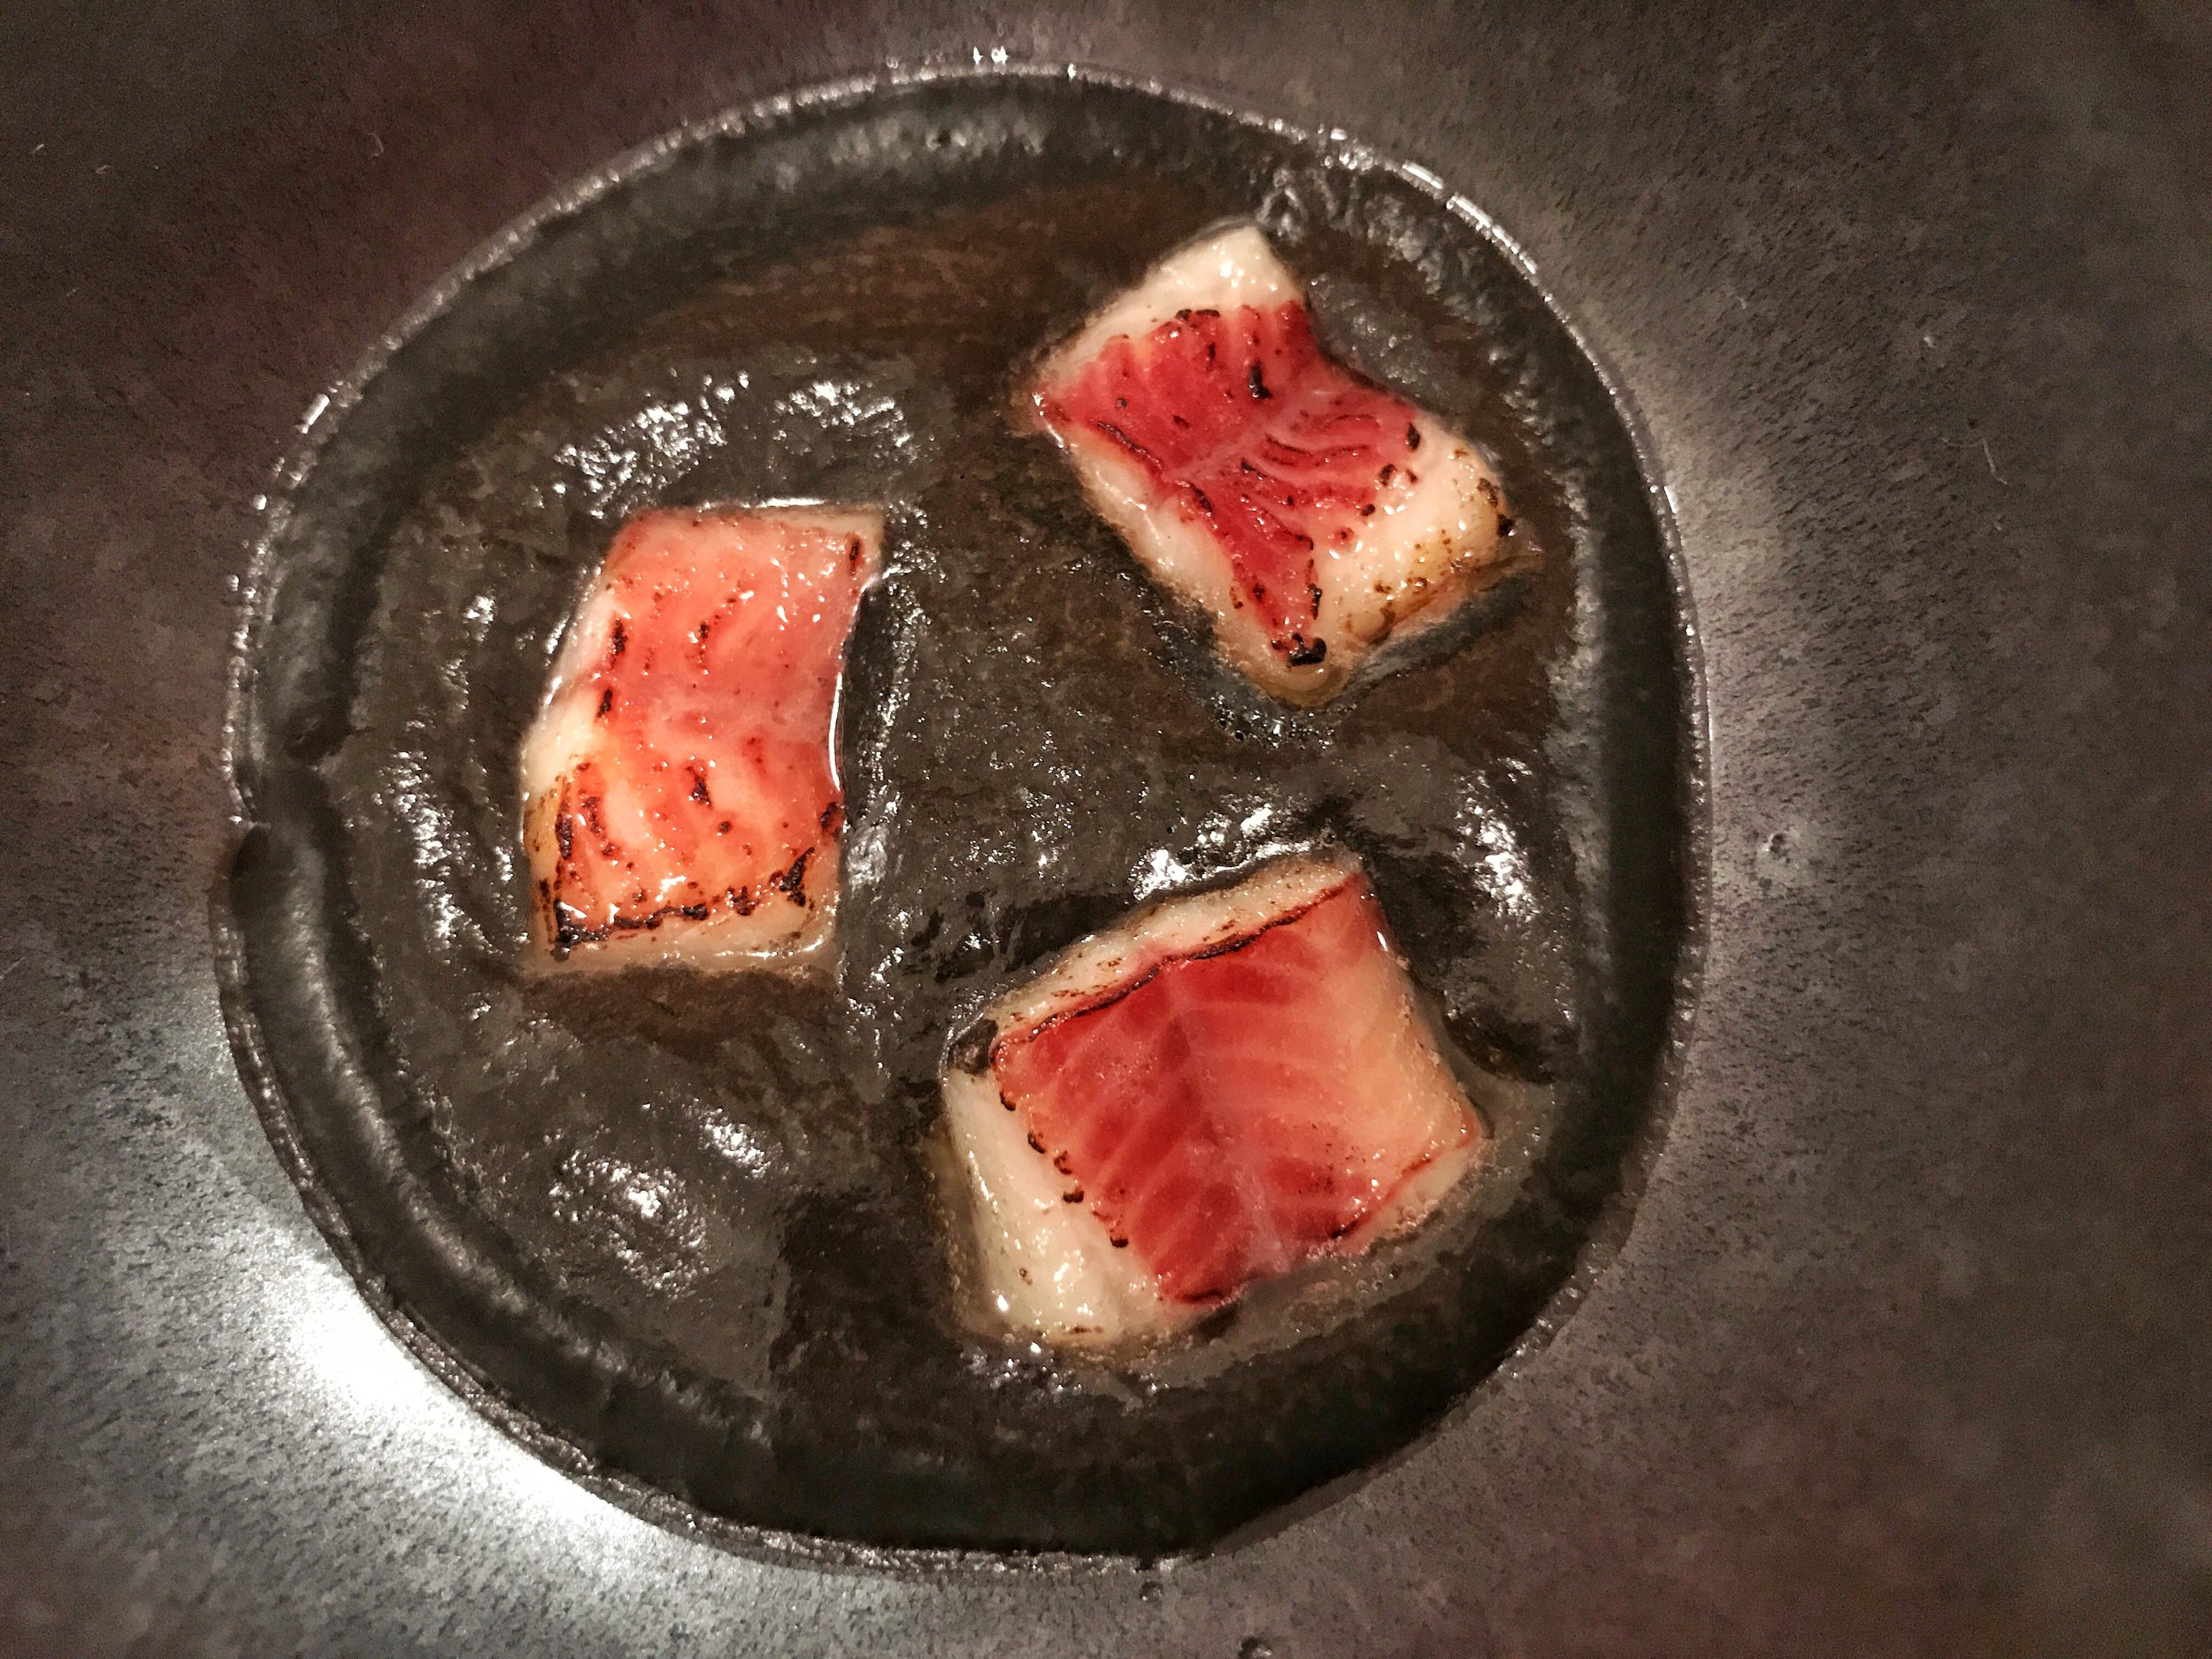 Smoked eel in black sesame sauce- The eel was smoky and paired excellently with the black sesame sauce. I'm a big fan!